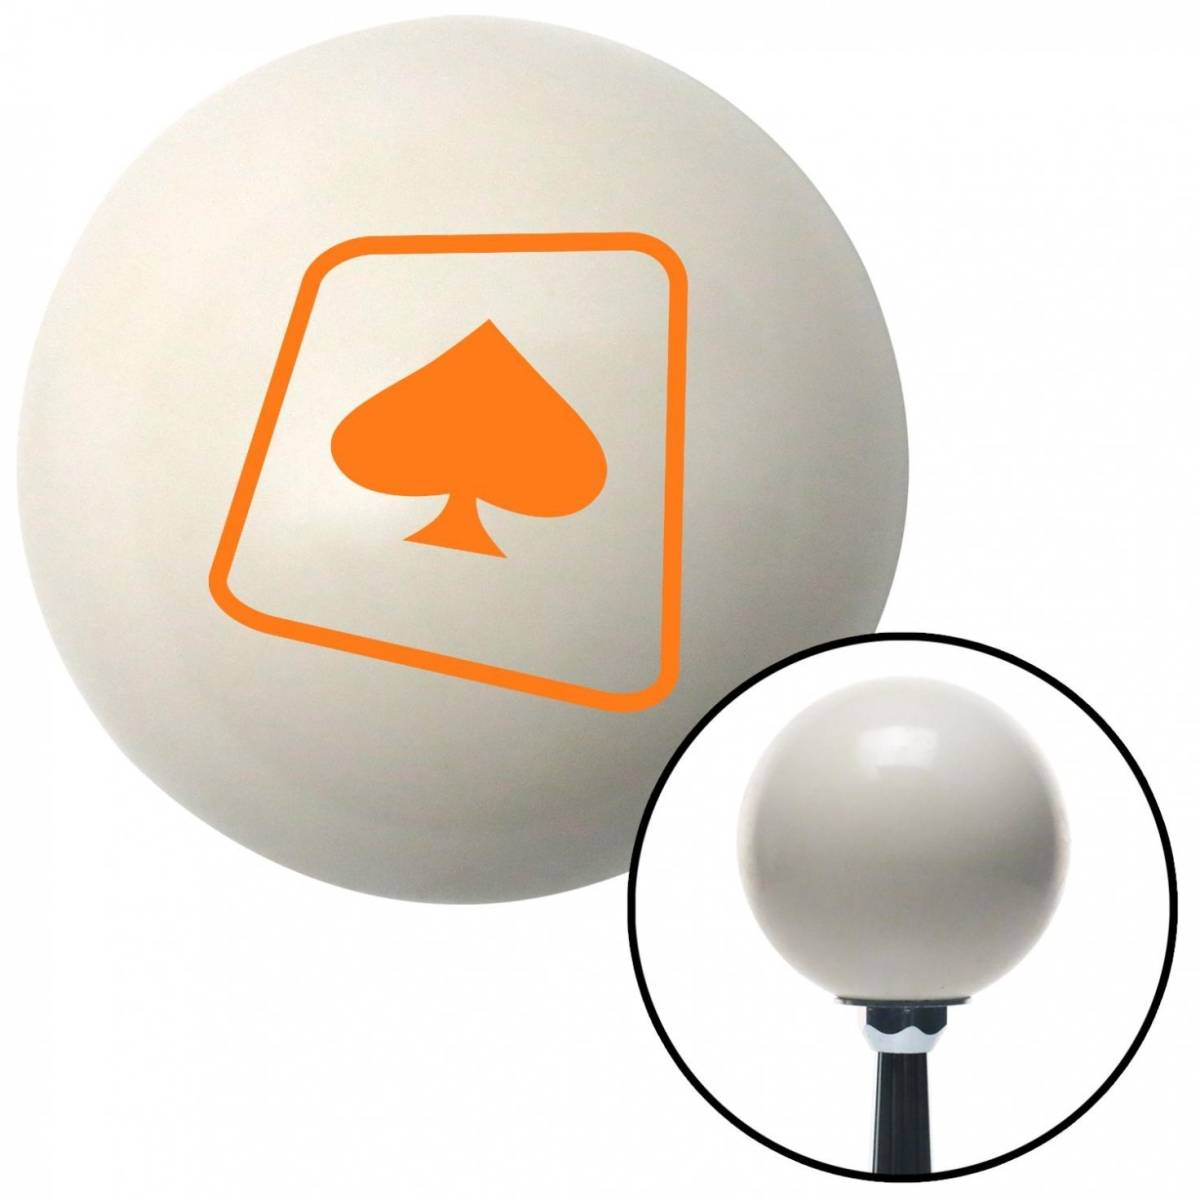 American Shifter Company American Shifter 30677 Orange Spade on a Card Ivory Shift Knob with M16 x 1.5 Insert Shifter Auto Manual Brody